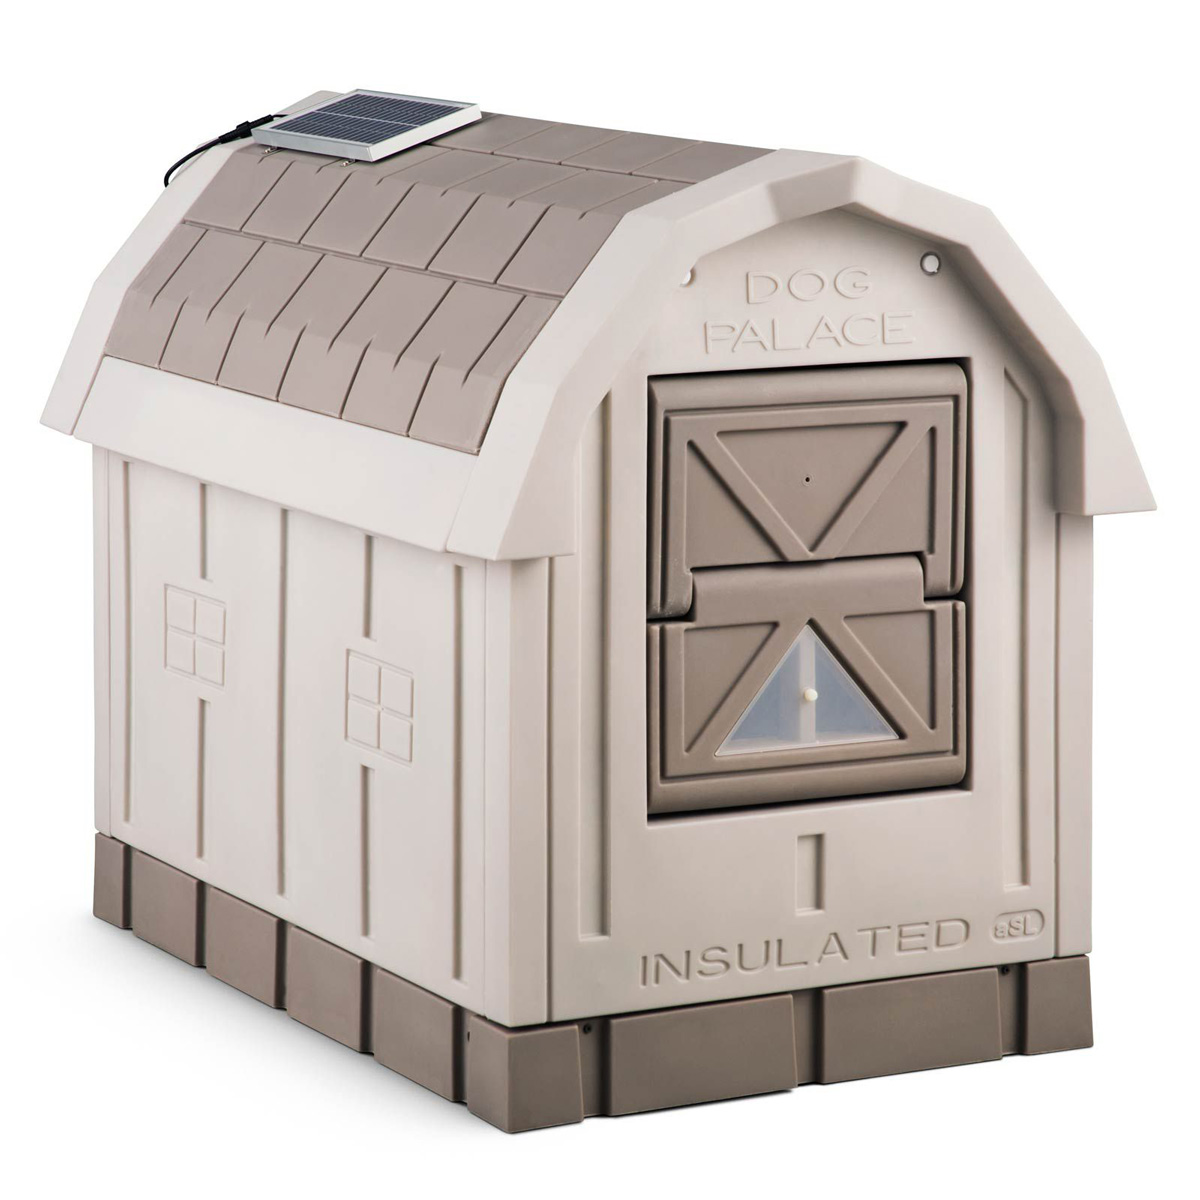 Insulated Outdoor Dog House Outdoor Cat House Best Insulated Outdoor Cat Houses